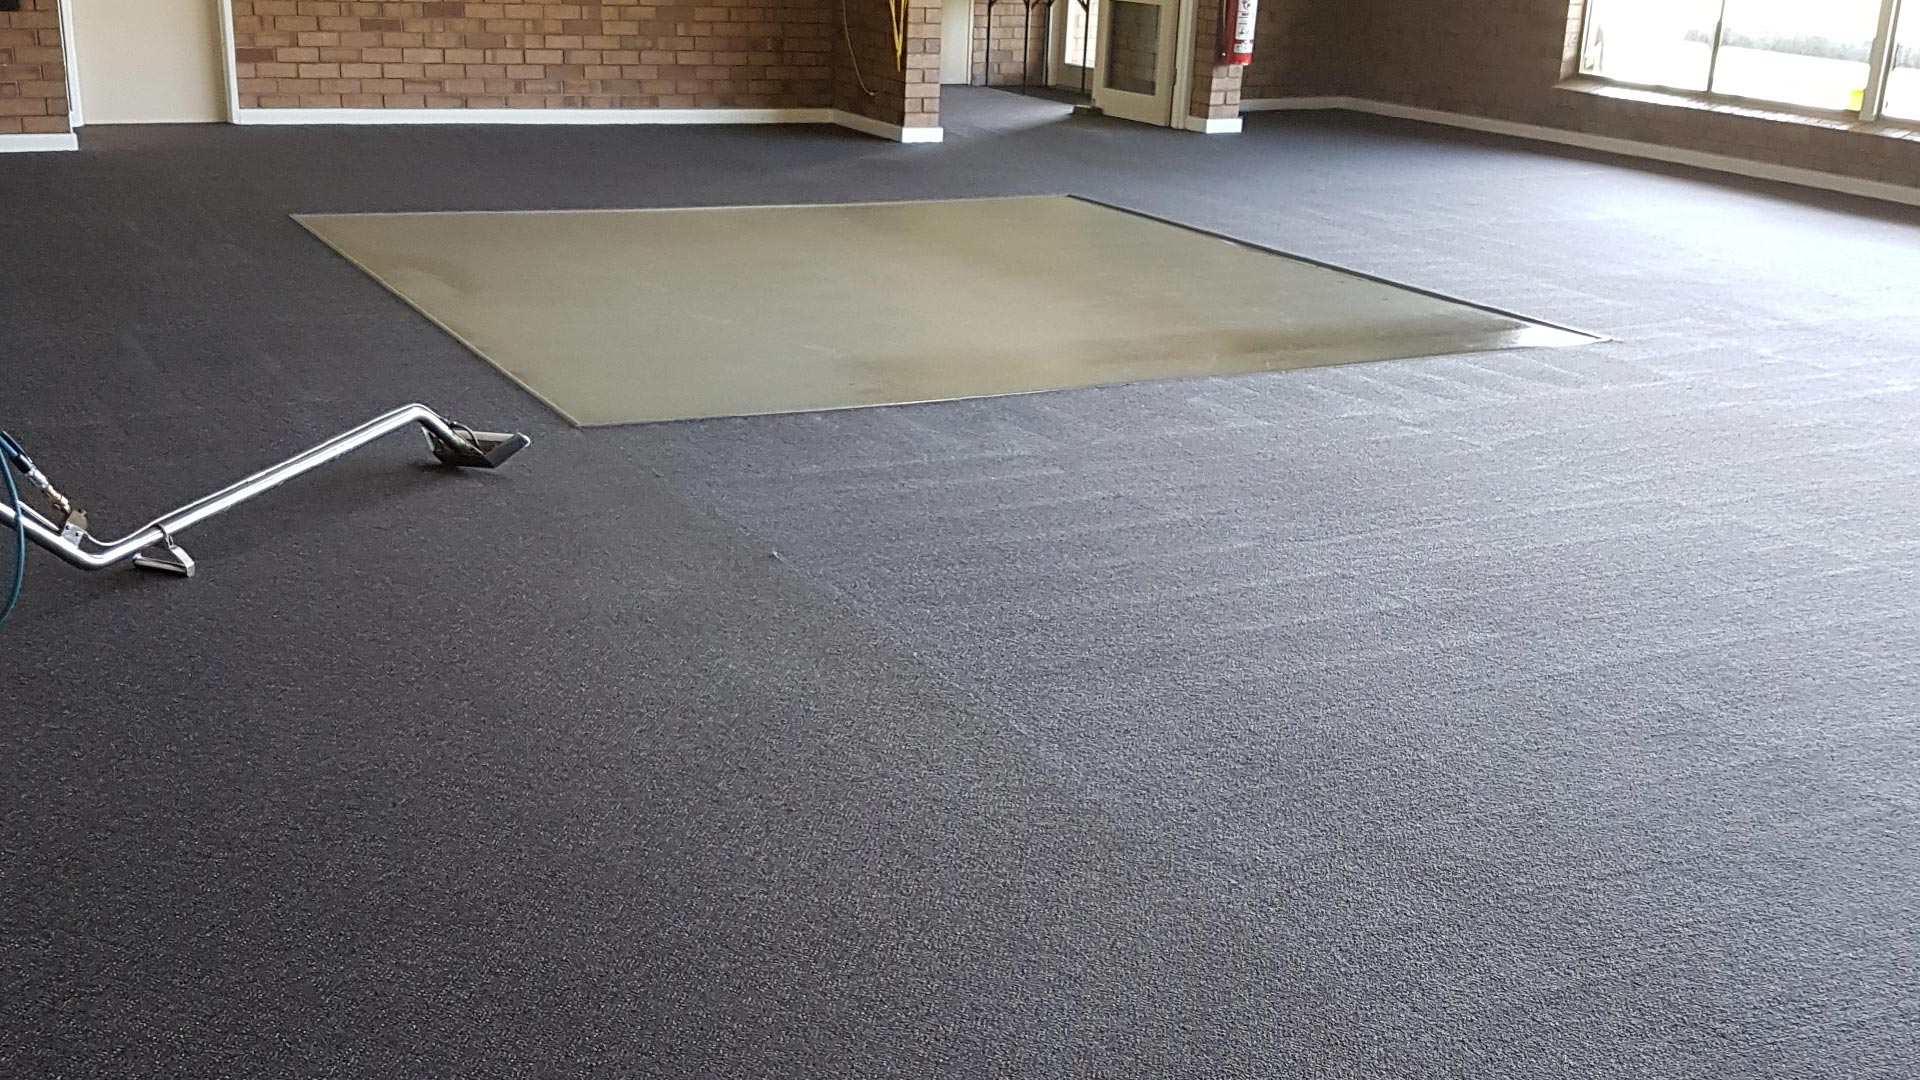 We clean carpets in homes and business all around Moonta, Kadina and Wallaroo.